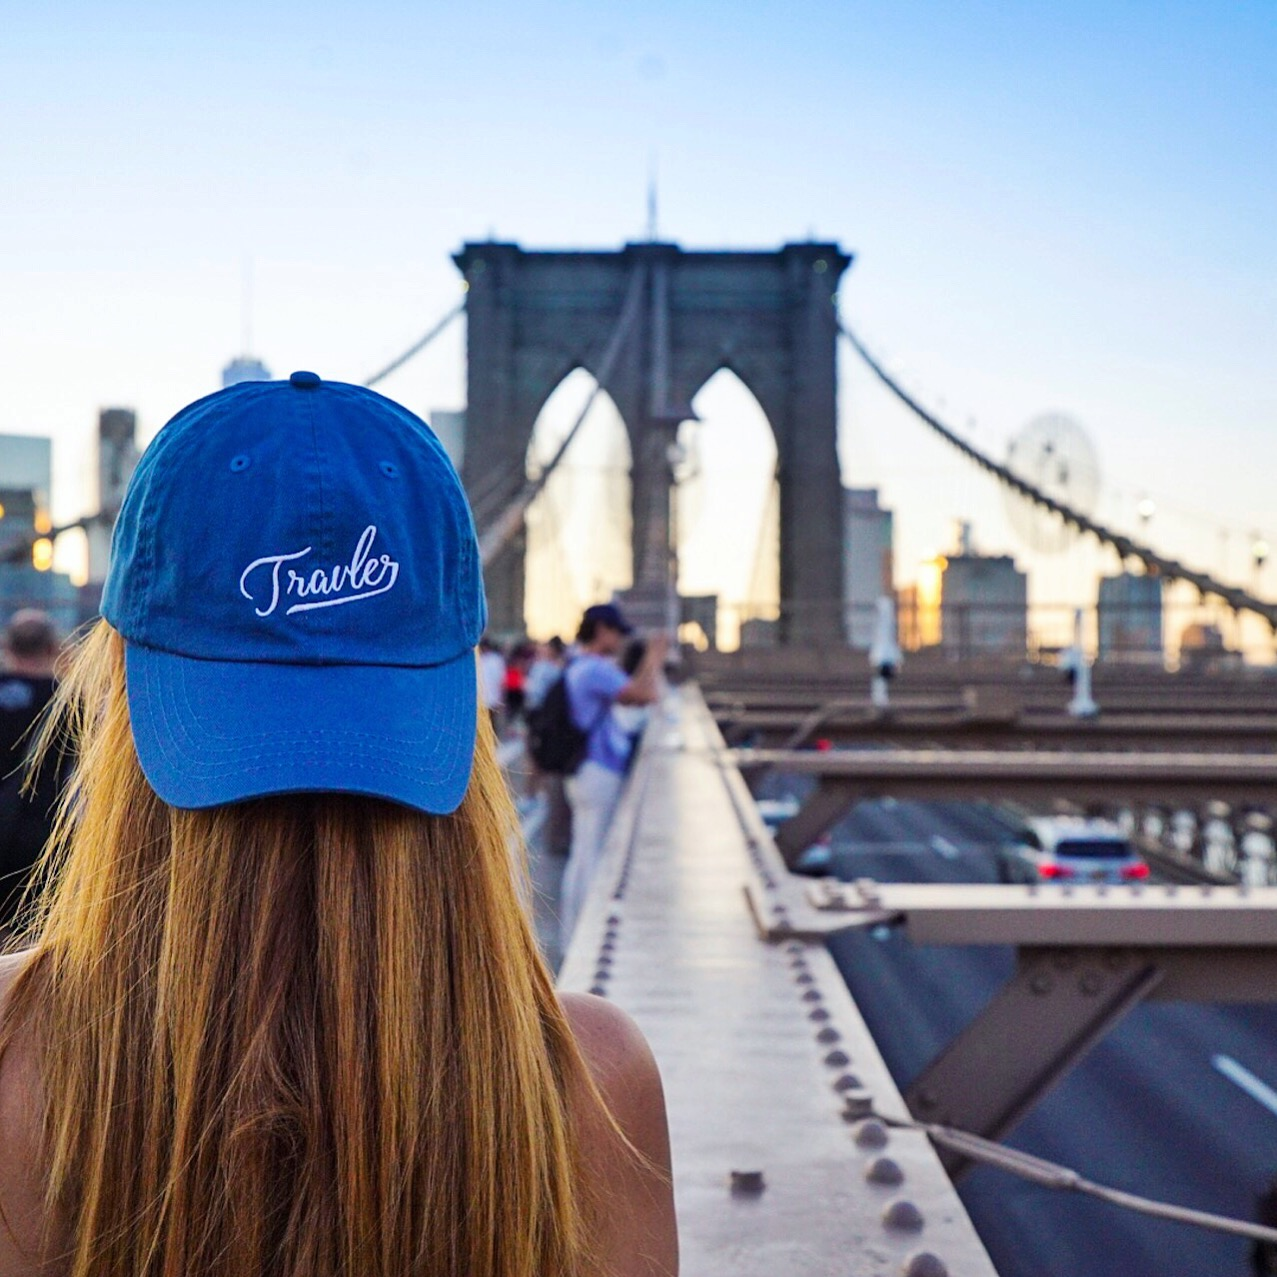 nyc brooklyn bridge travel and adventure inspiration quotes